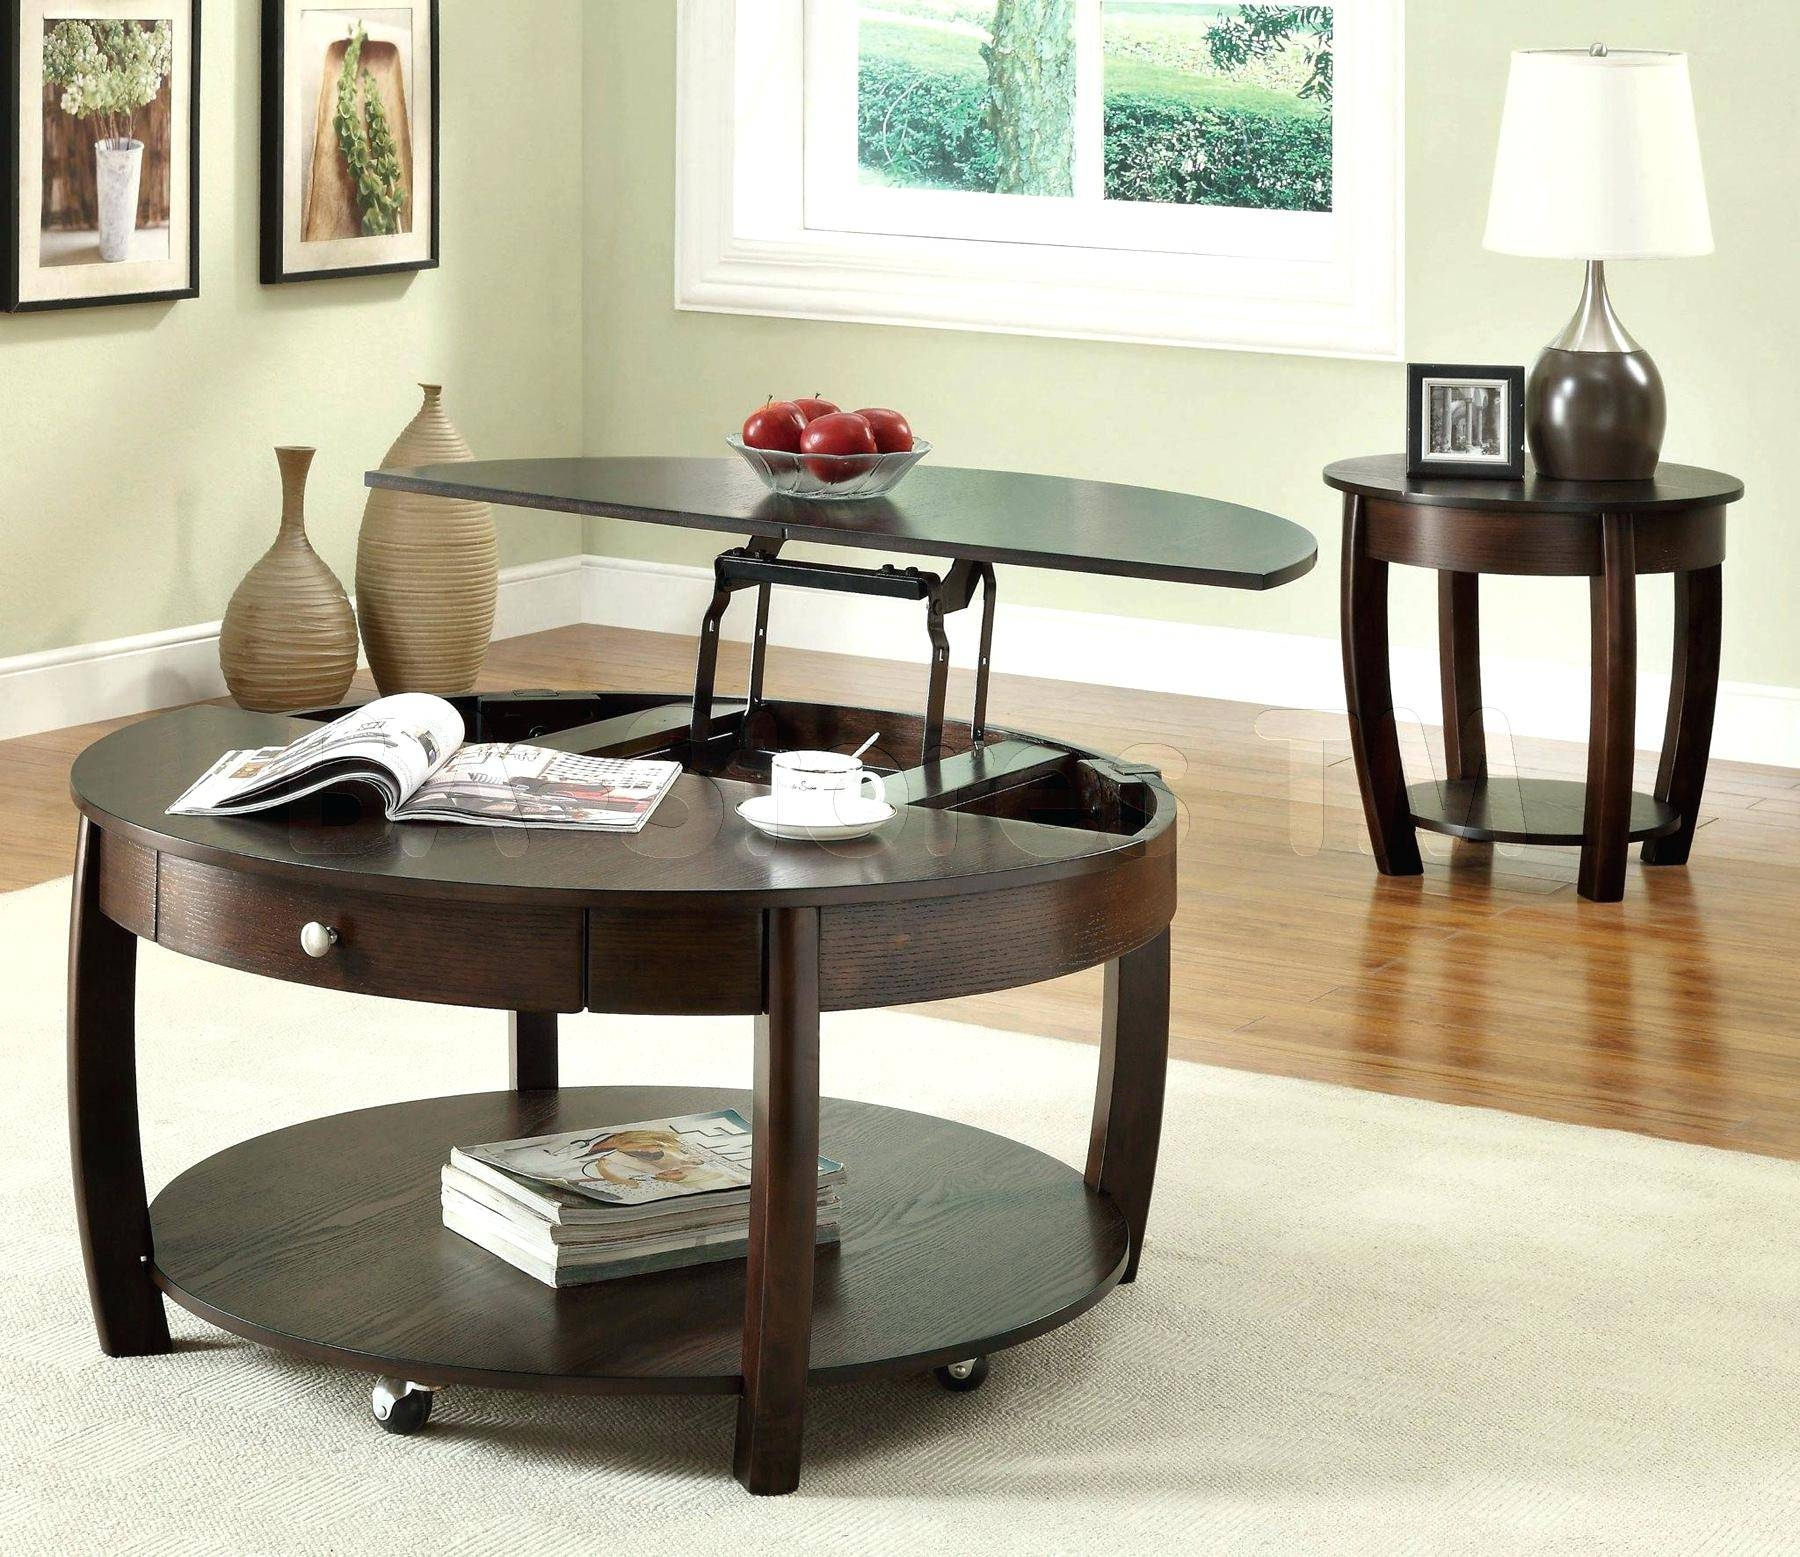 Custom Wood And Metal Tables | Coffee Tables Decoration for Cheap Lift Top Coffee Tables (Image 6 of 30)